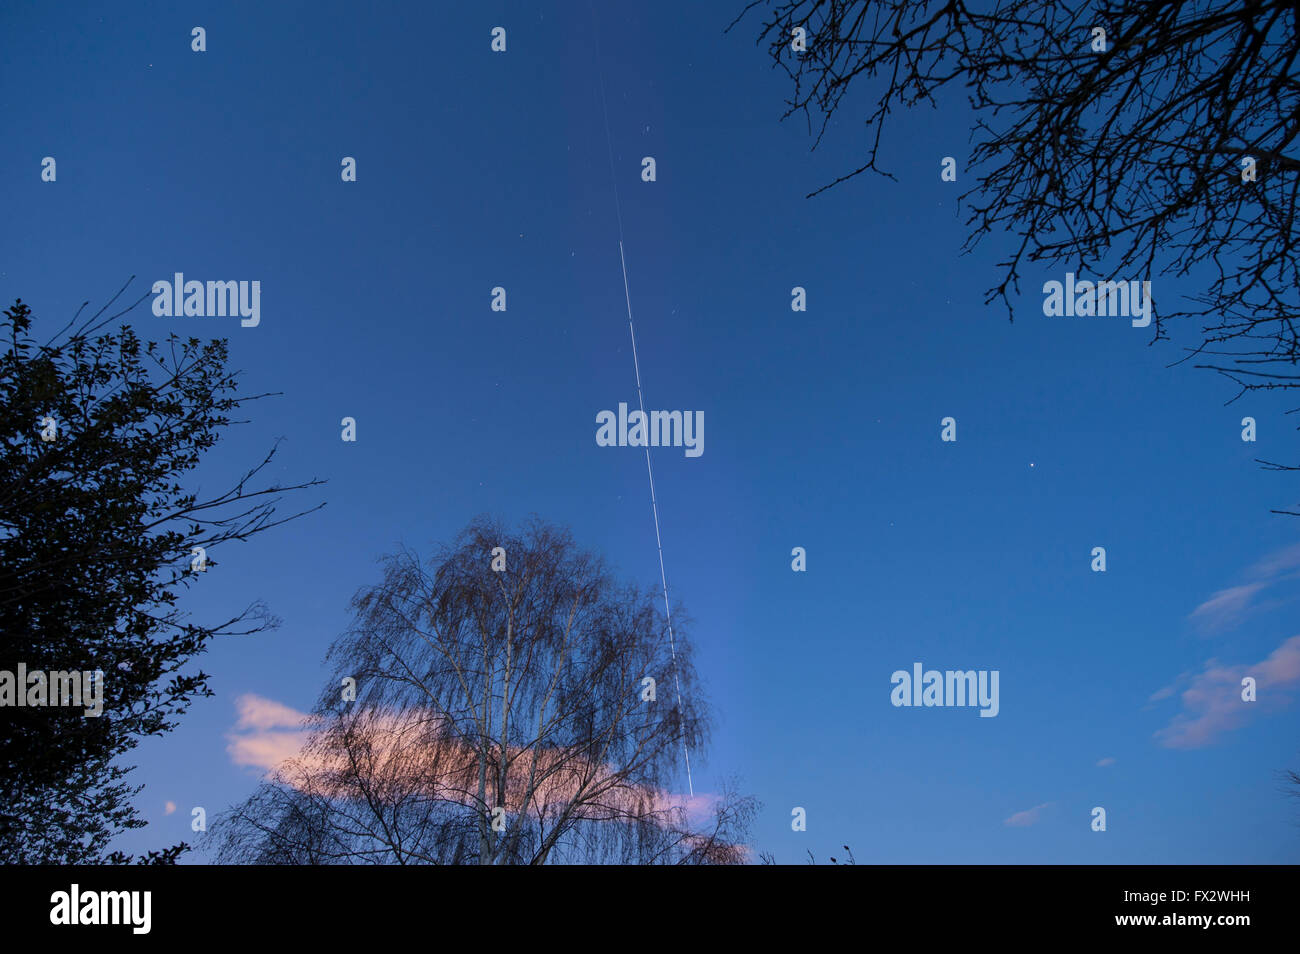 Wimbledon, London, UK. 9th April, 2016. 2 spacecraft above London - the International Space Station tracks across - Stock Image